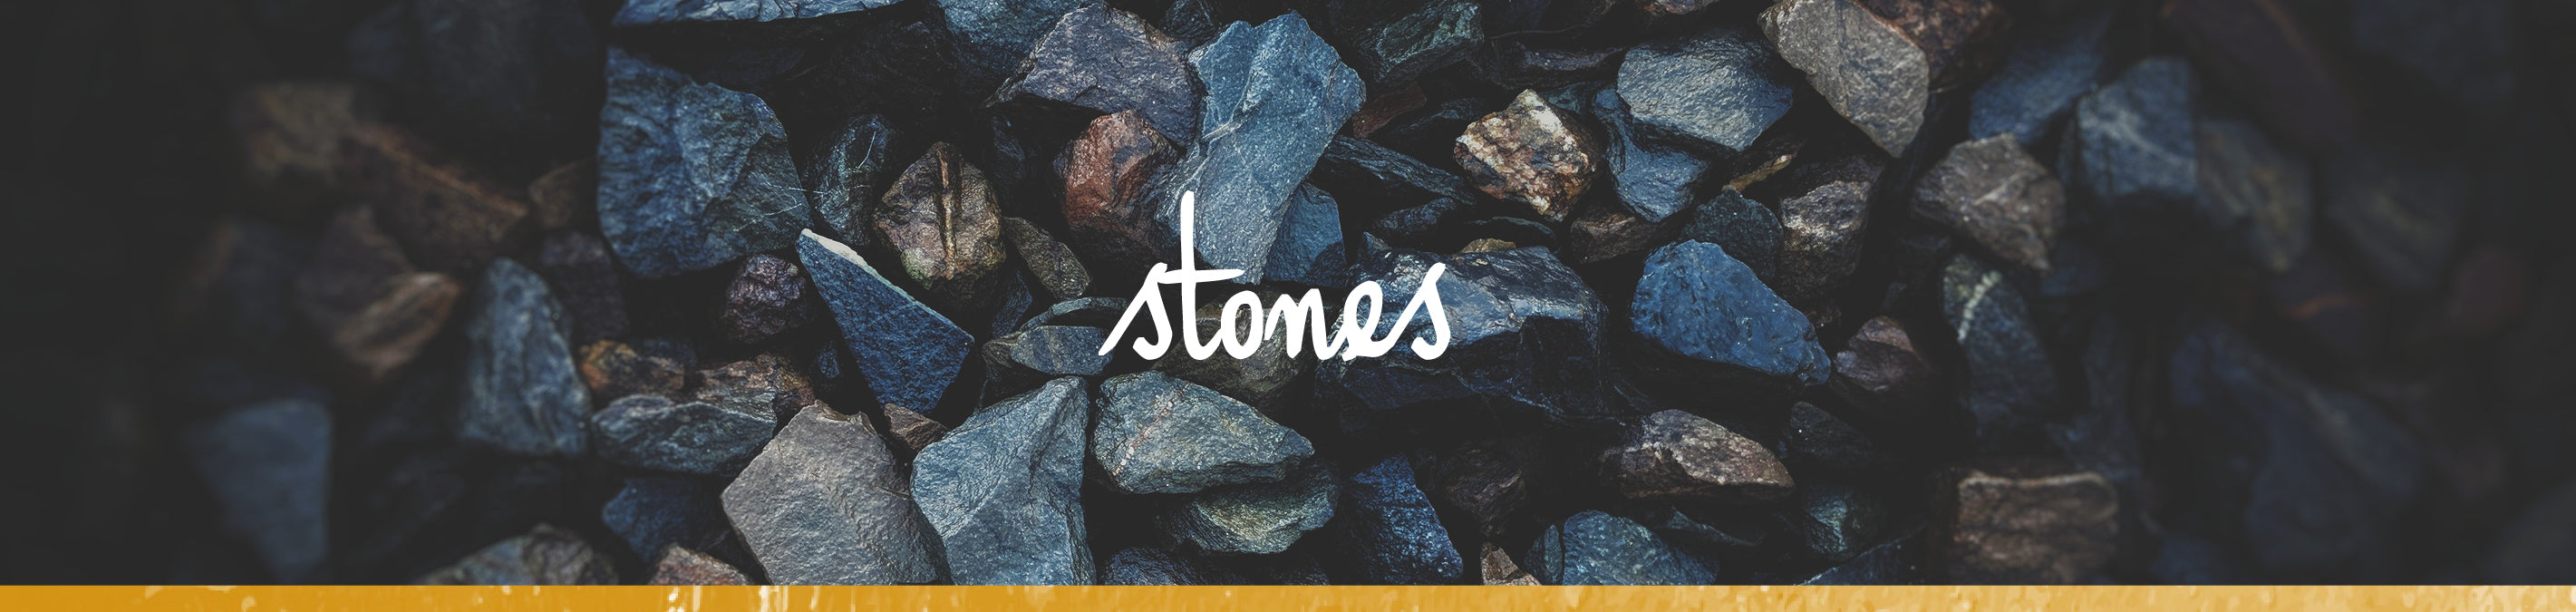 SHOP BY STONES